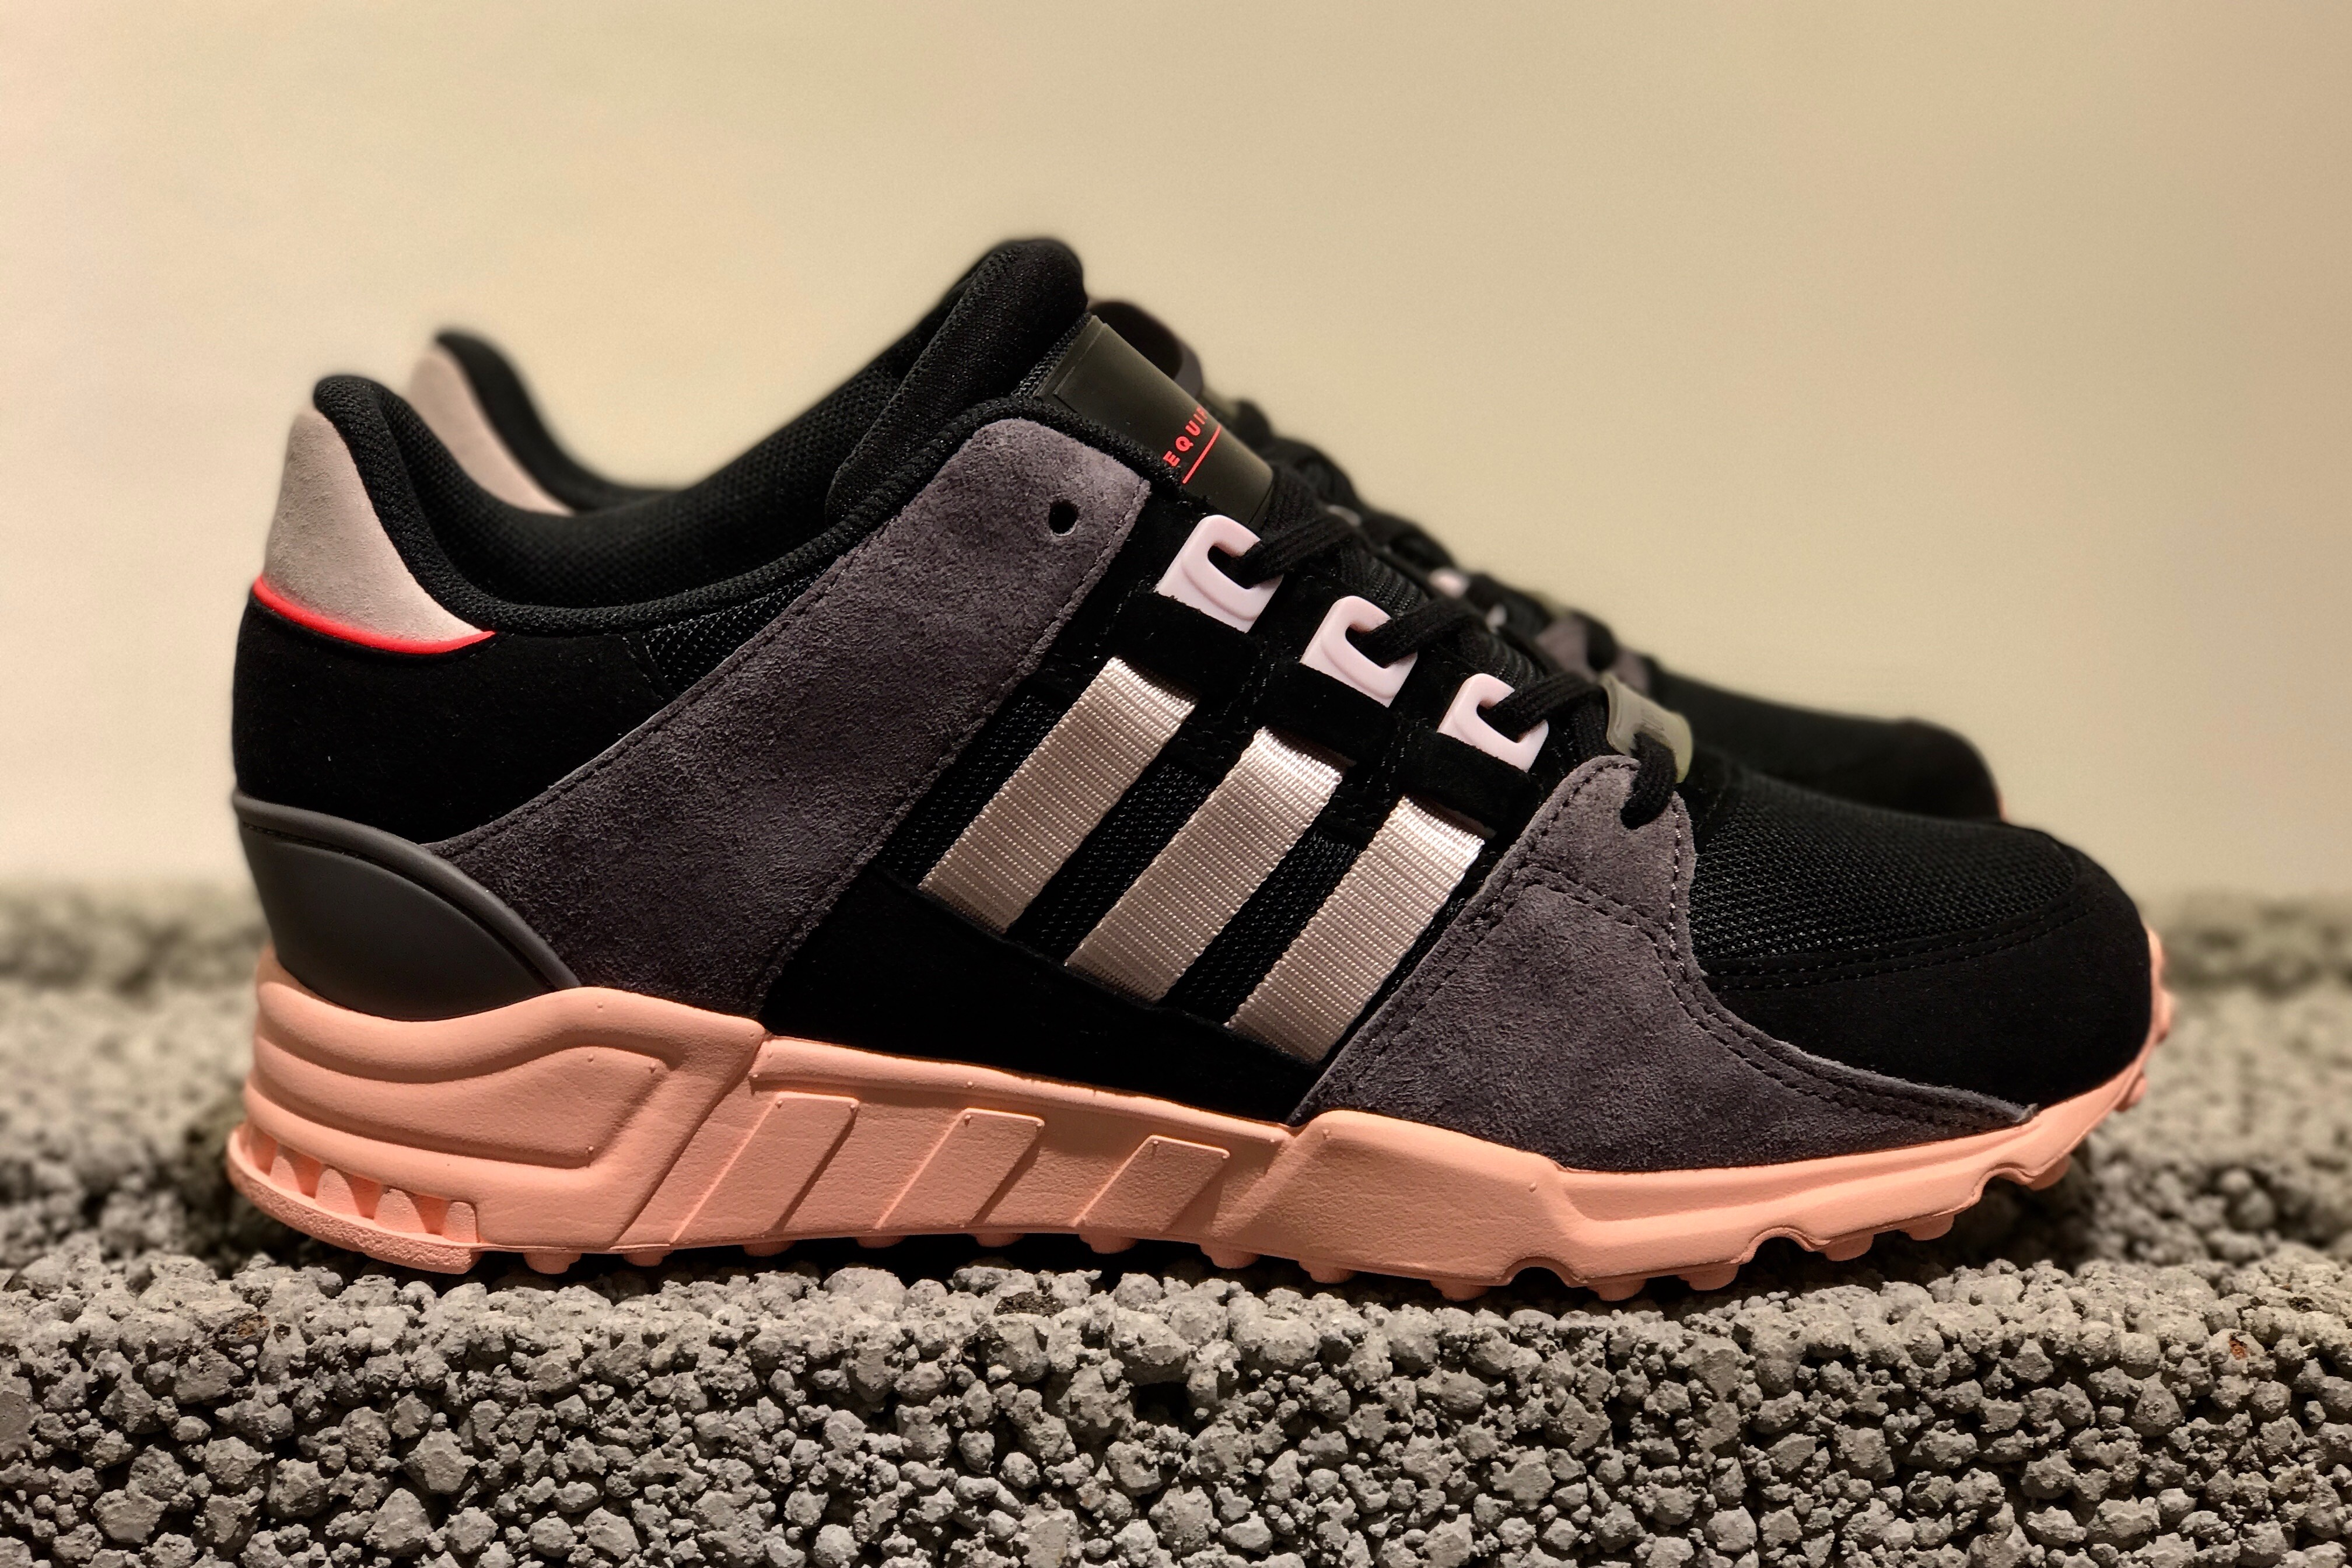 brand new c5865 c02b6 adidas Originals EQT Support RF W - Core Black / Ice Purple / Haze Coral